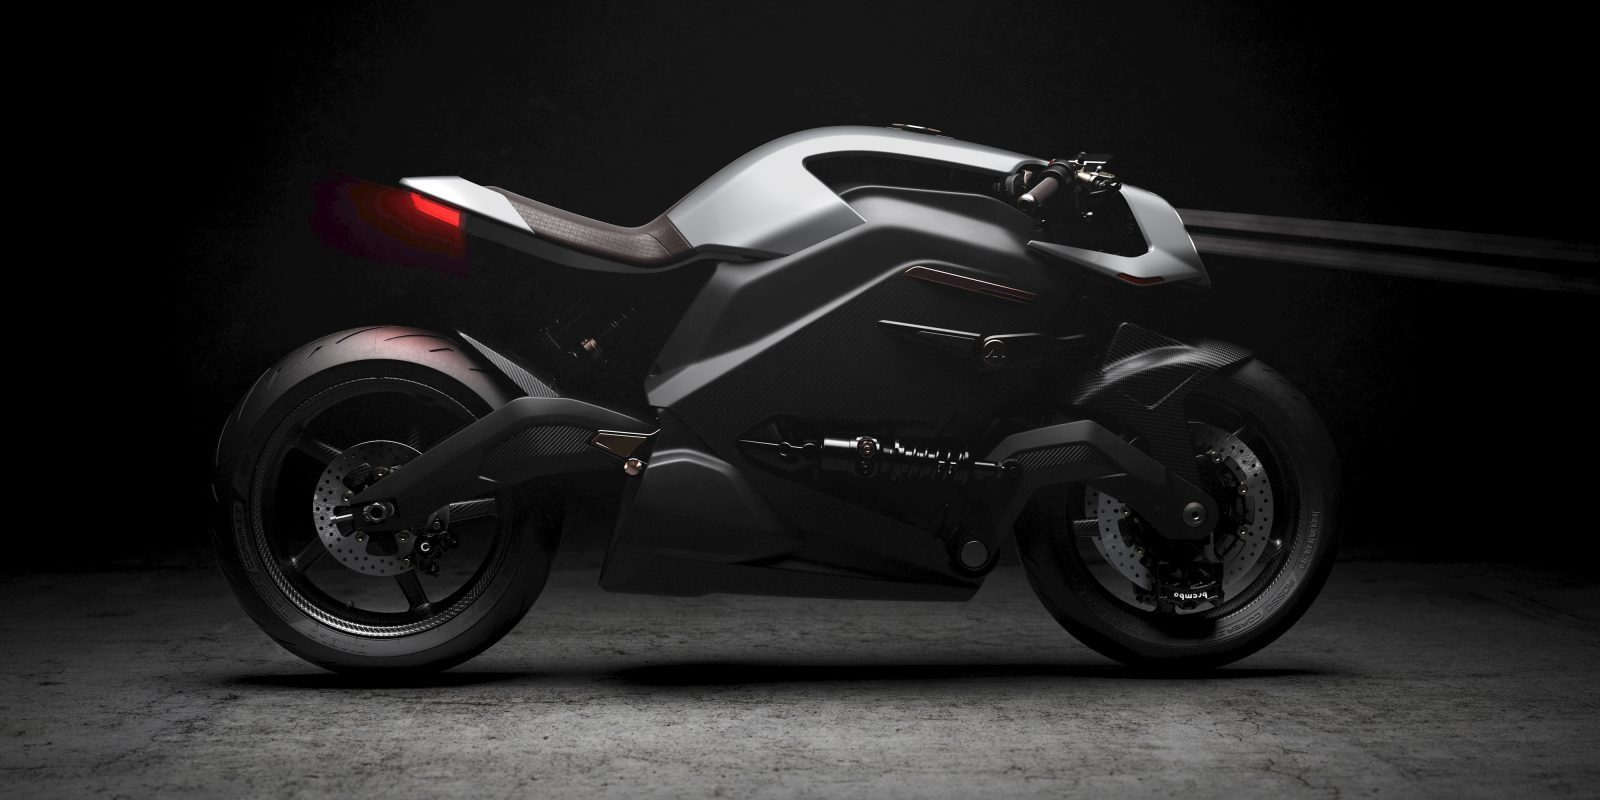 Arc Vector electric motorcycle is the most high tech $117k & 150 mph cafe racer